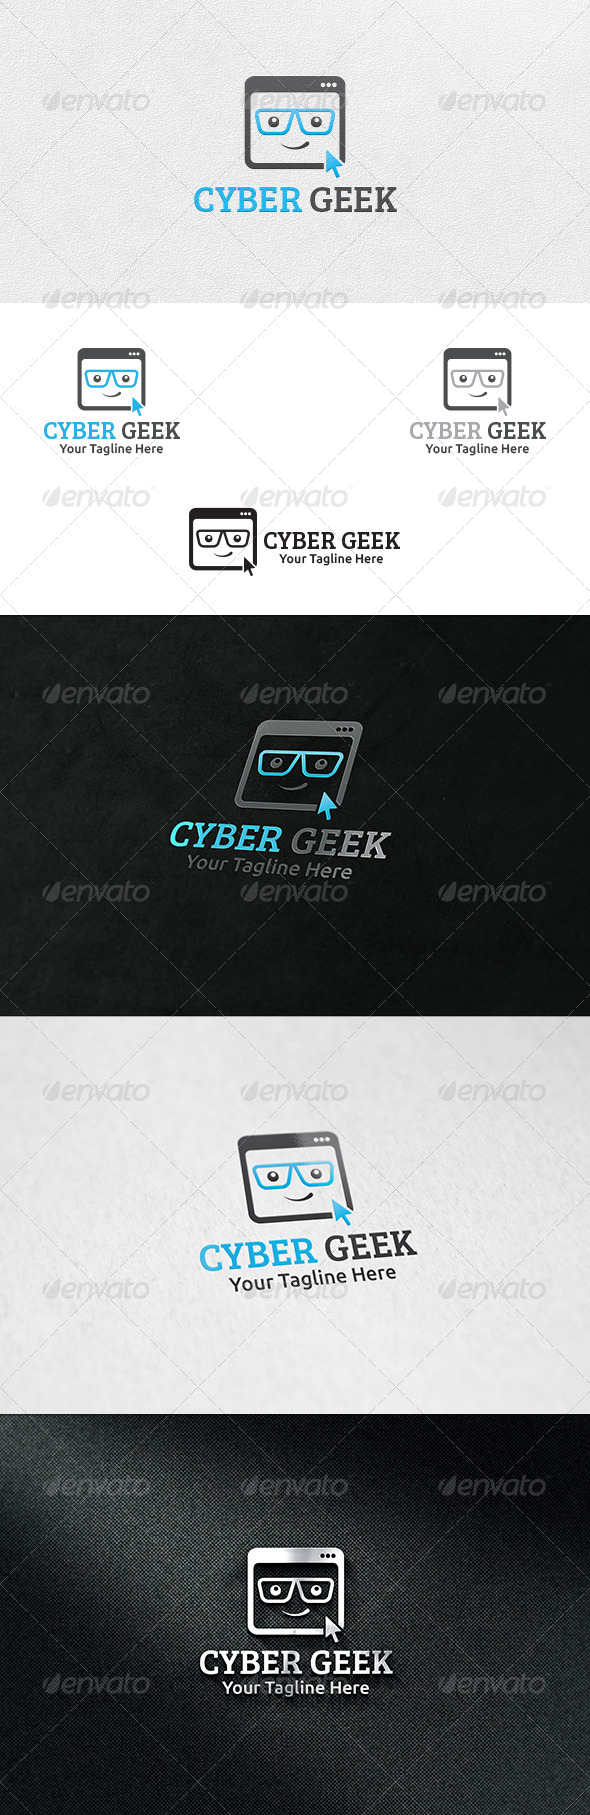 GraphicRiver Cyber Geek Logo Template 6736108